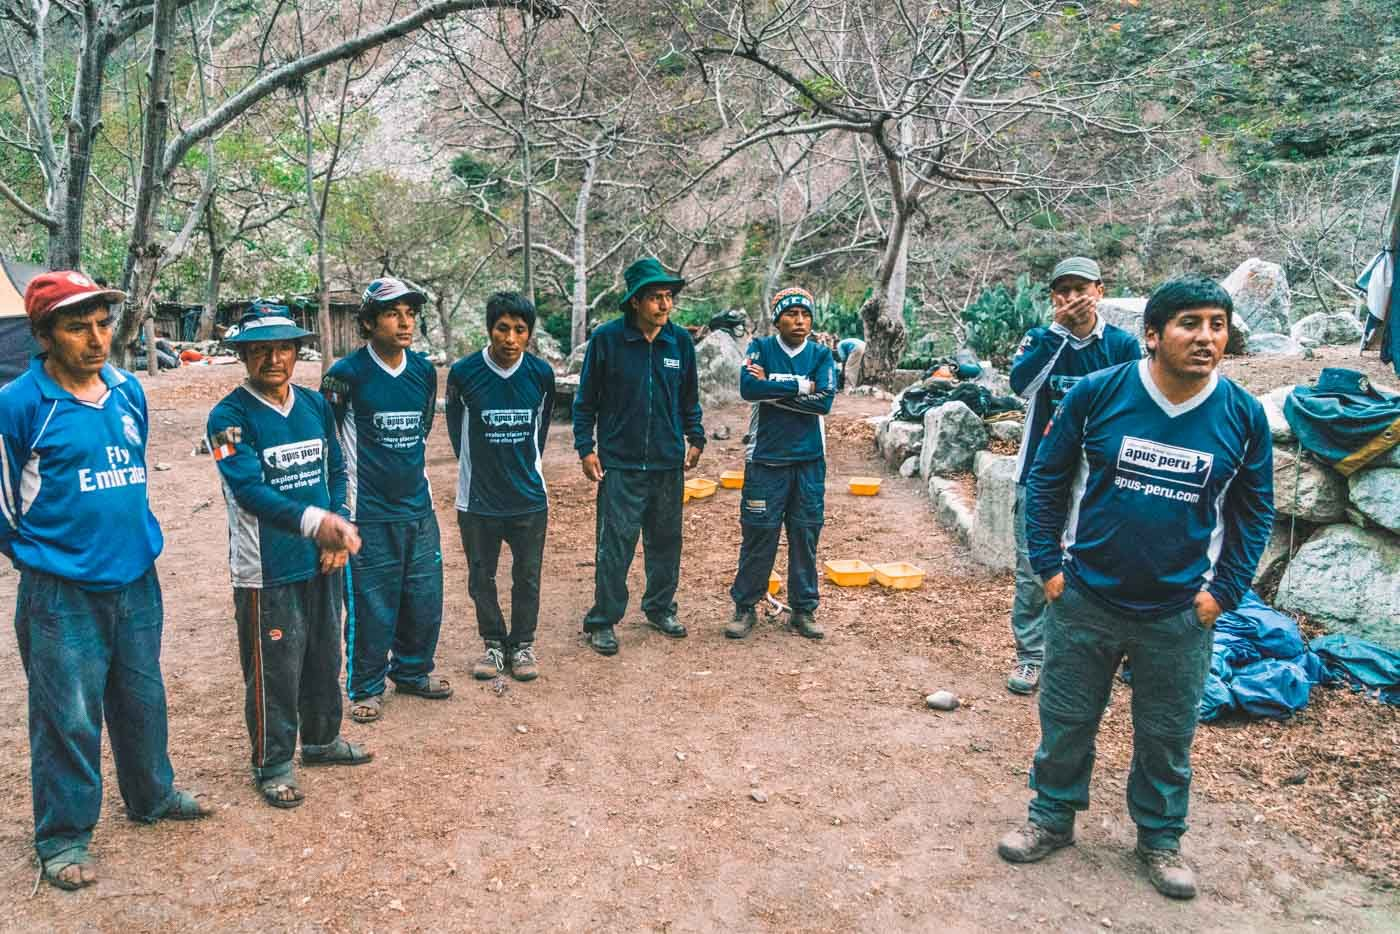 Our team of porters and cooks